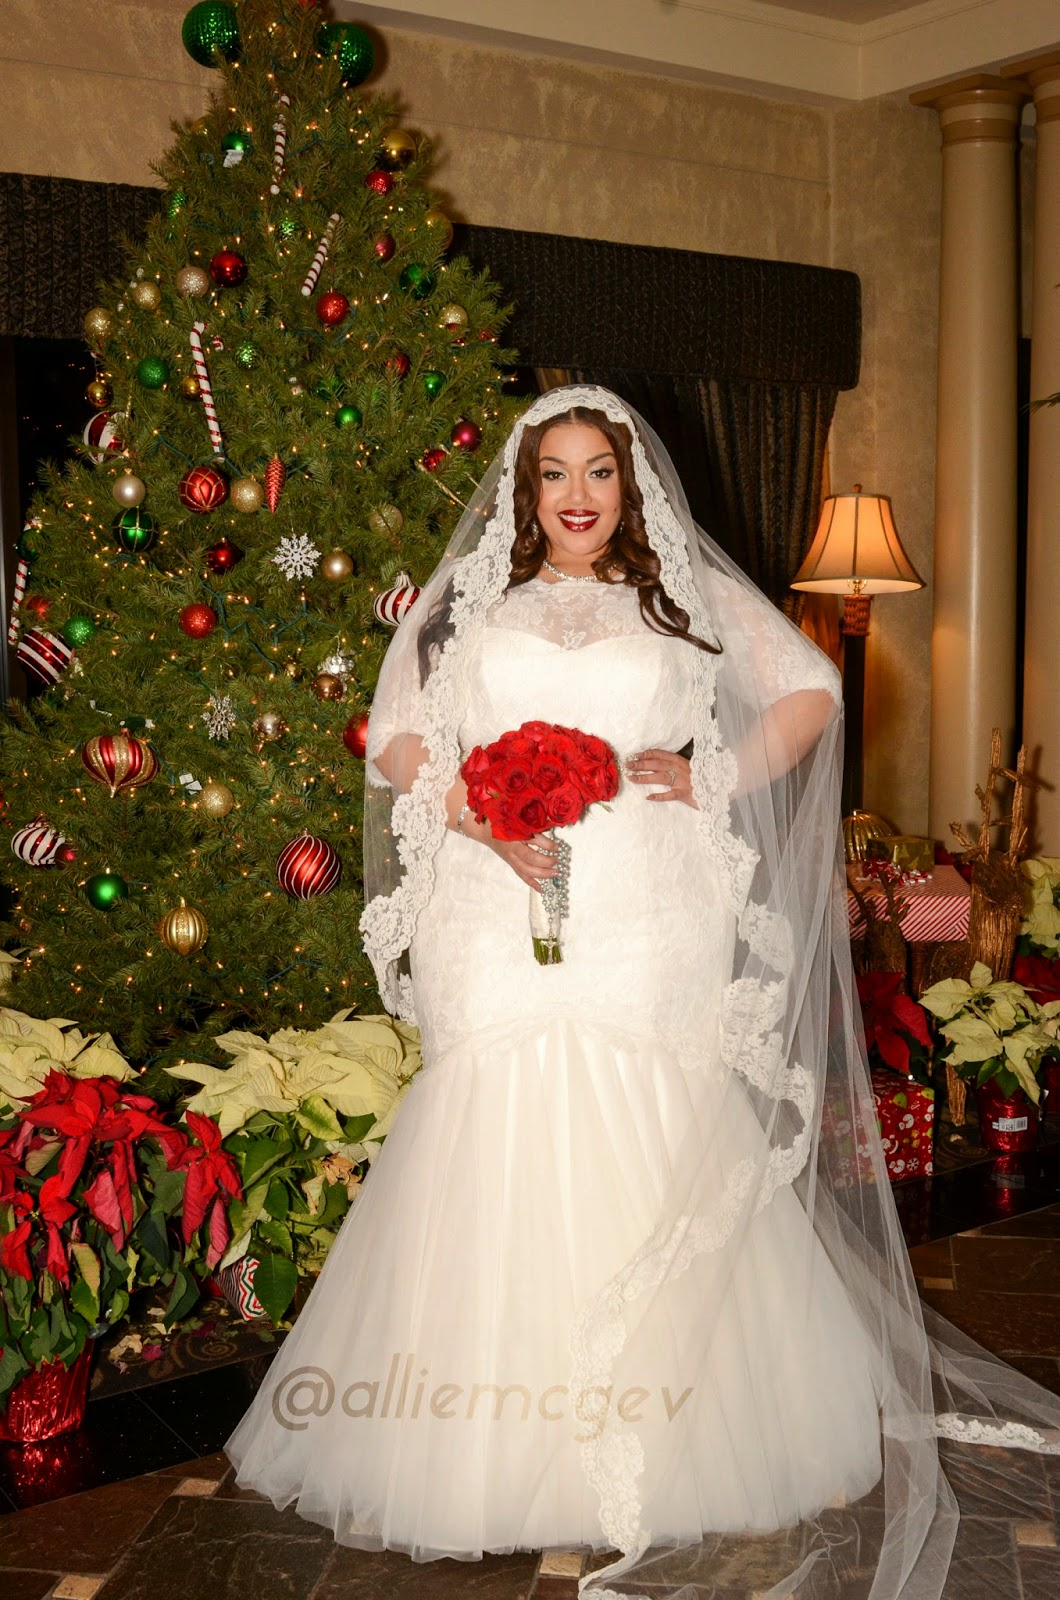 The ultimate guide to plus size wedding dress shopping inside the ultimate guide to plus size wedding dress shopping ombrellifo Images